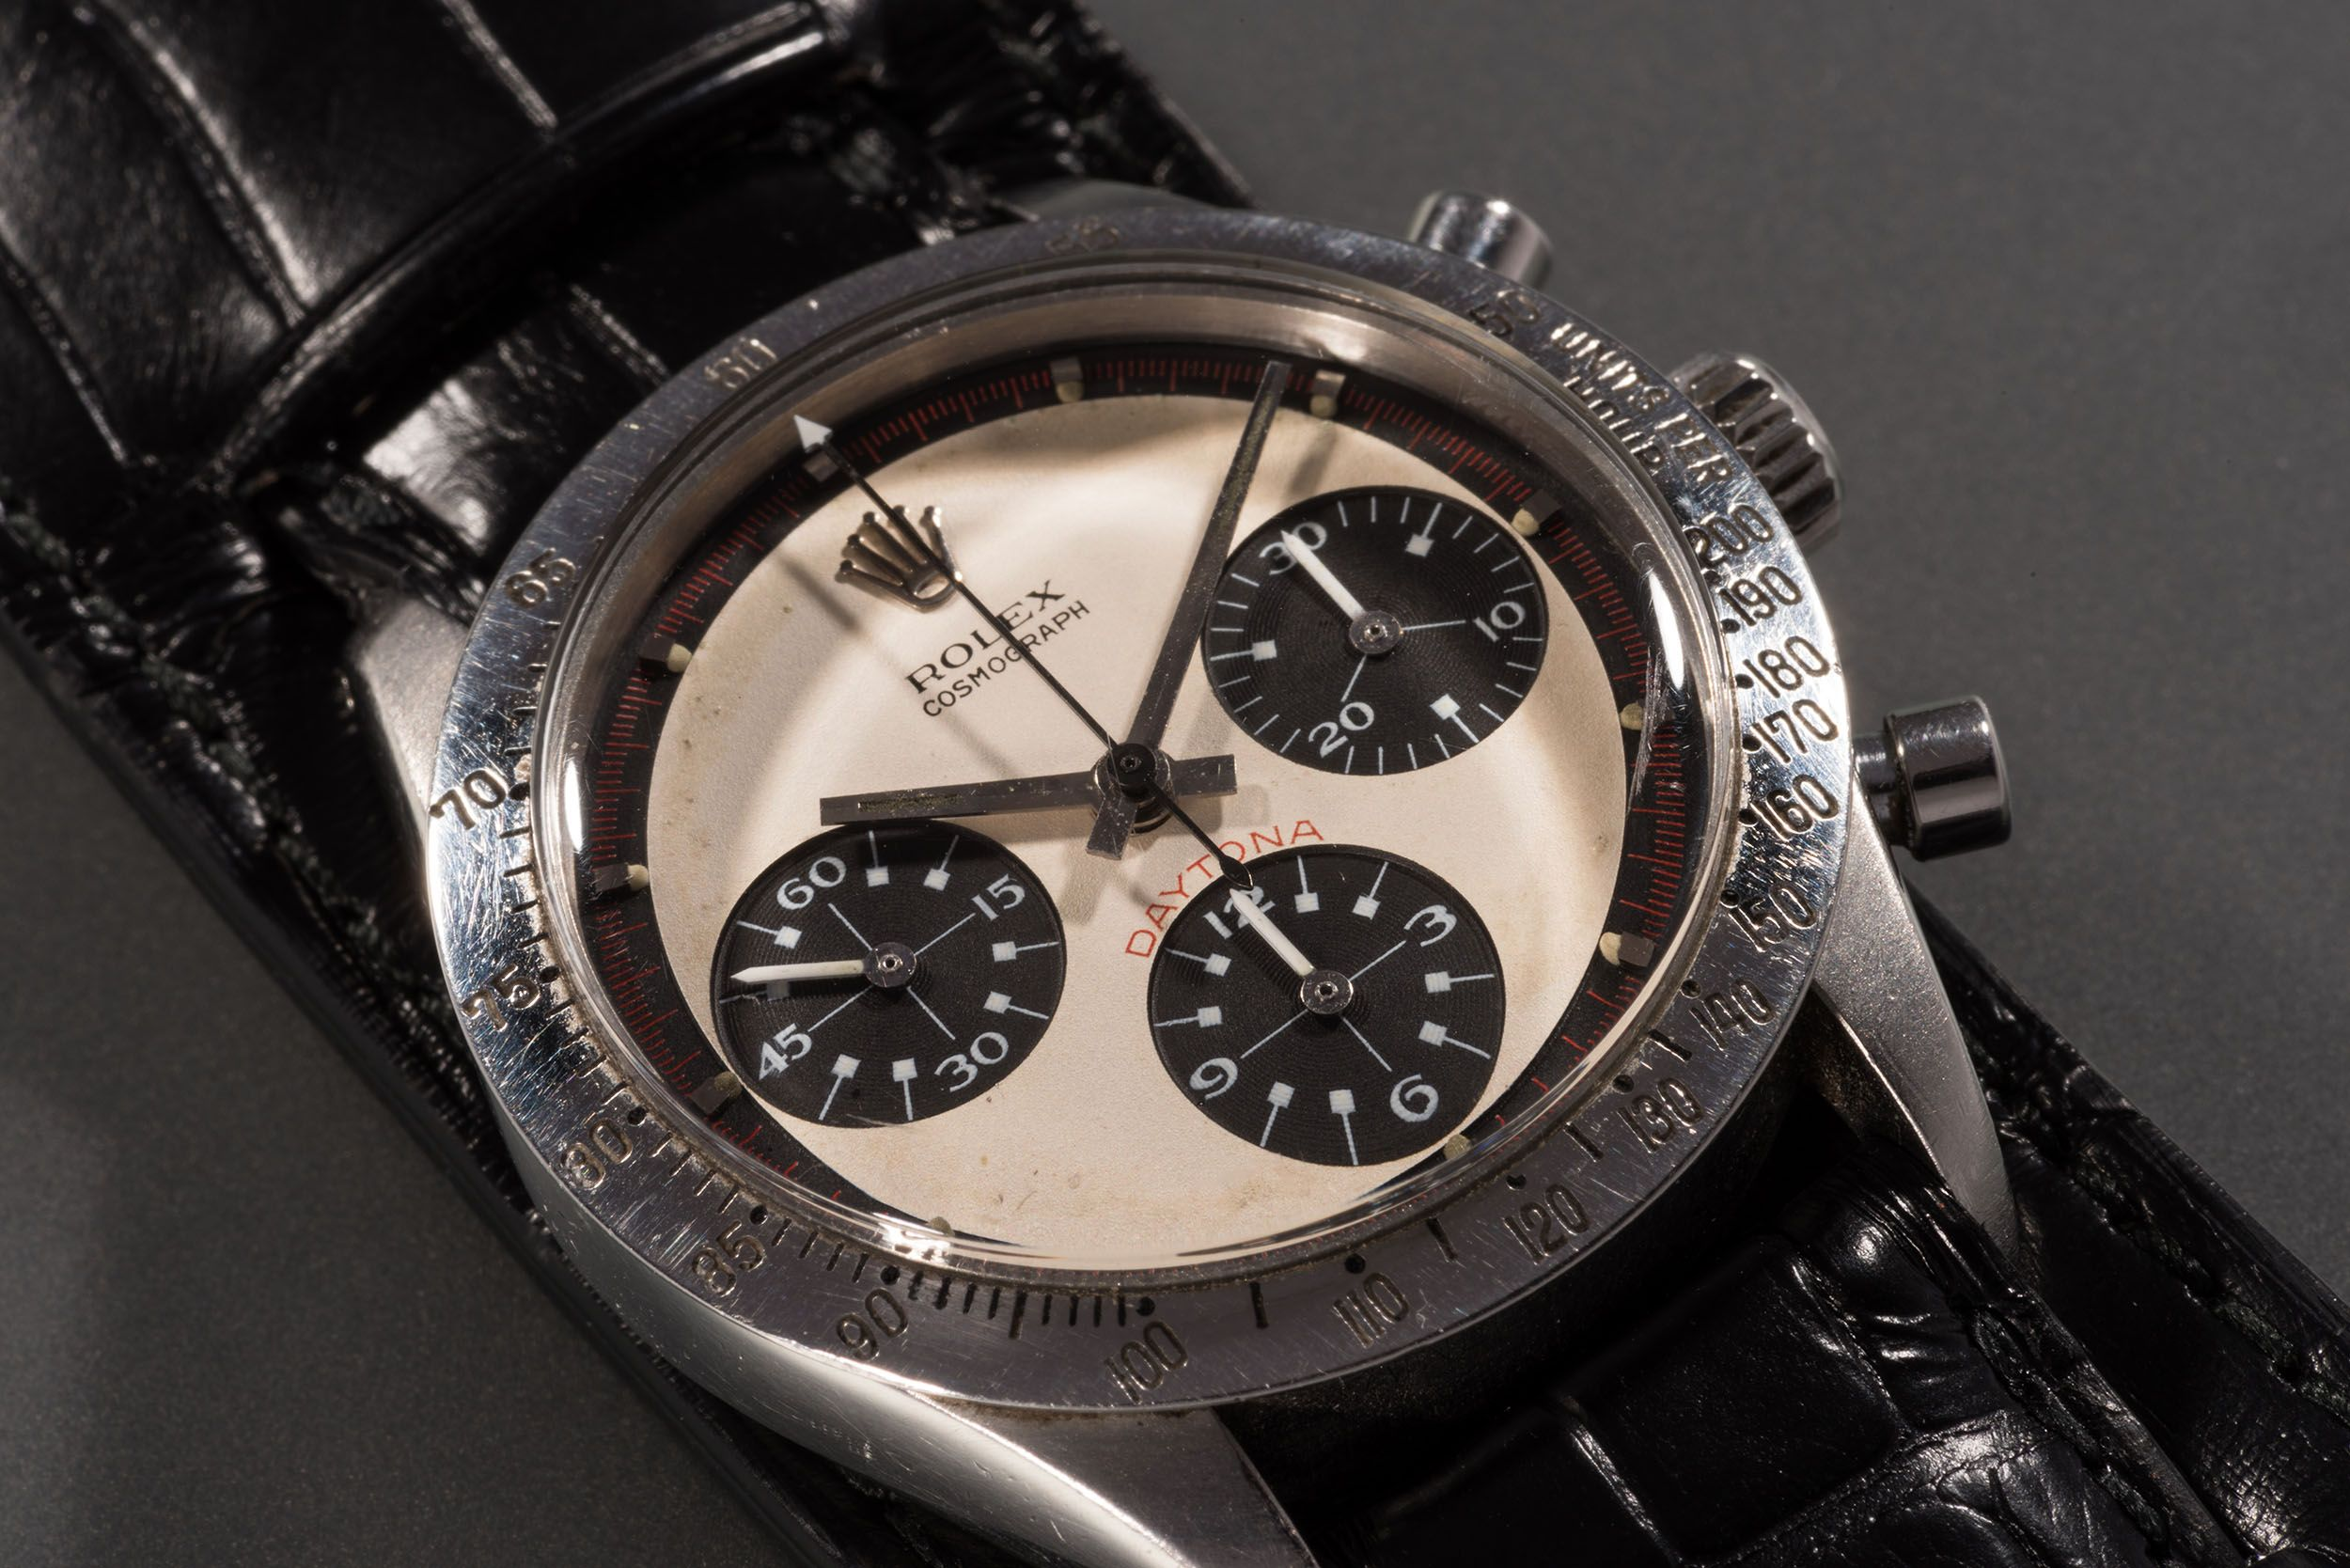 Paul Newman Rolex Daytona Is The Most Expensive Watch Ever Sold At